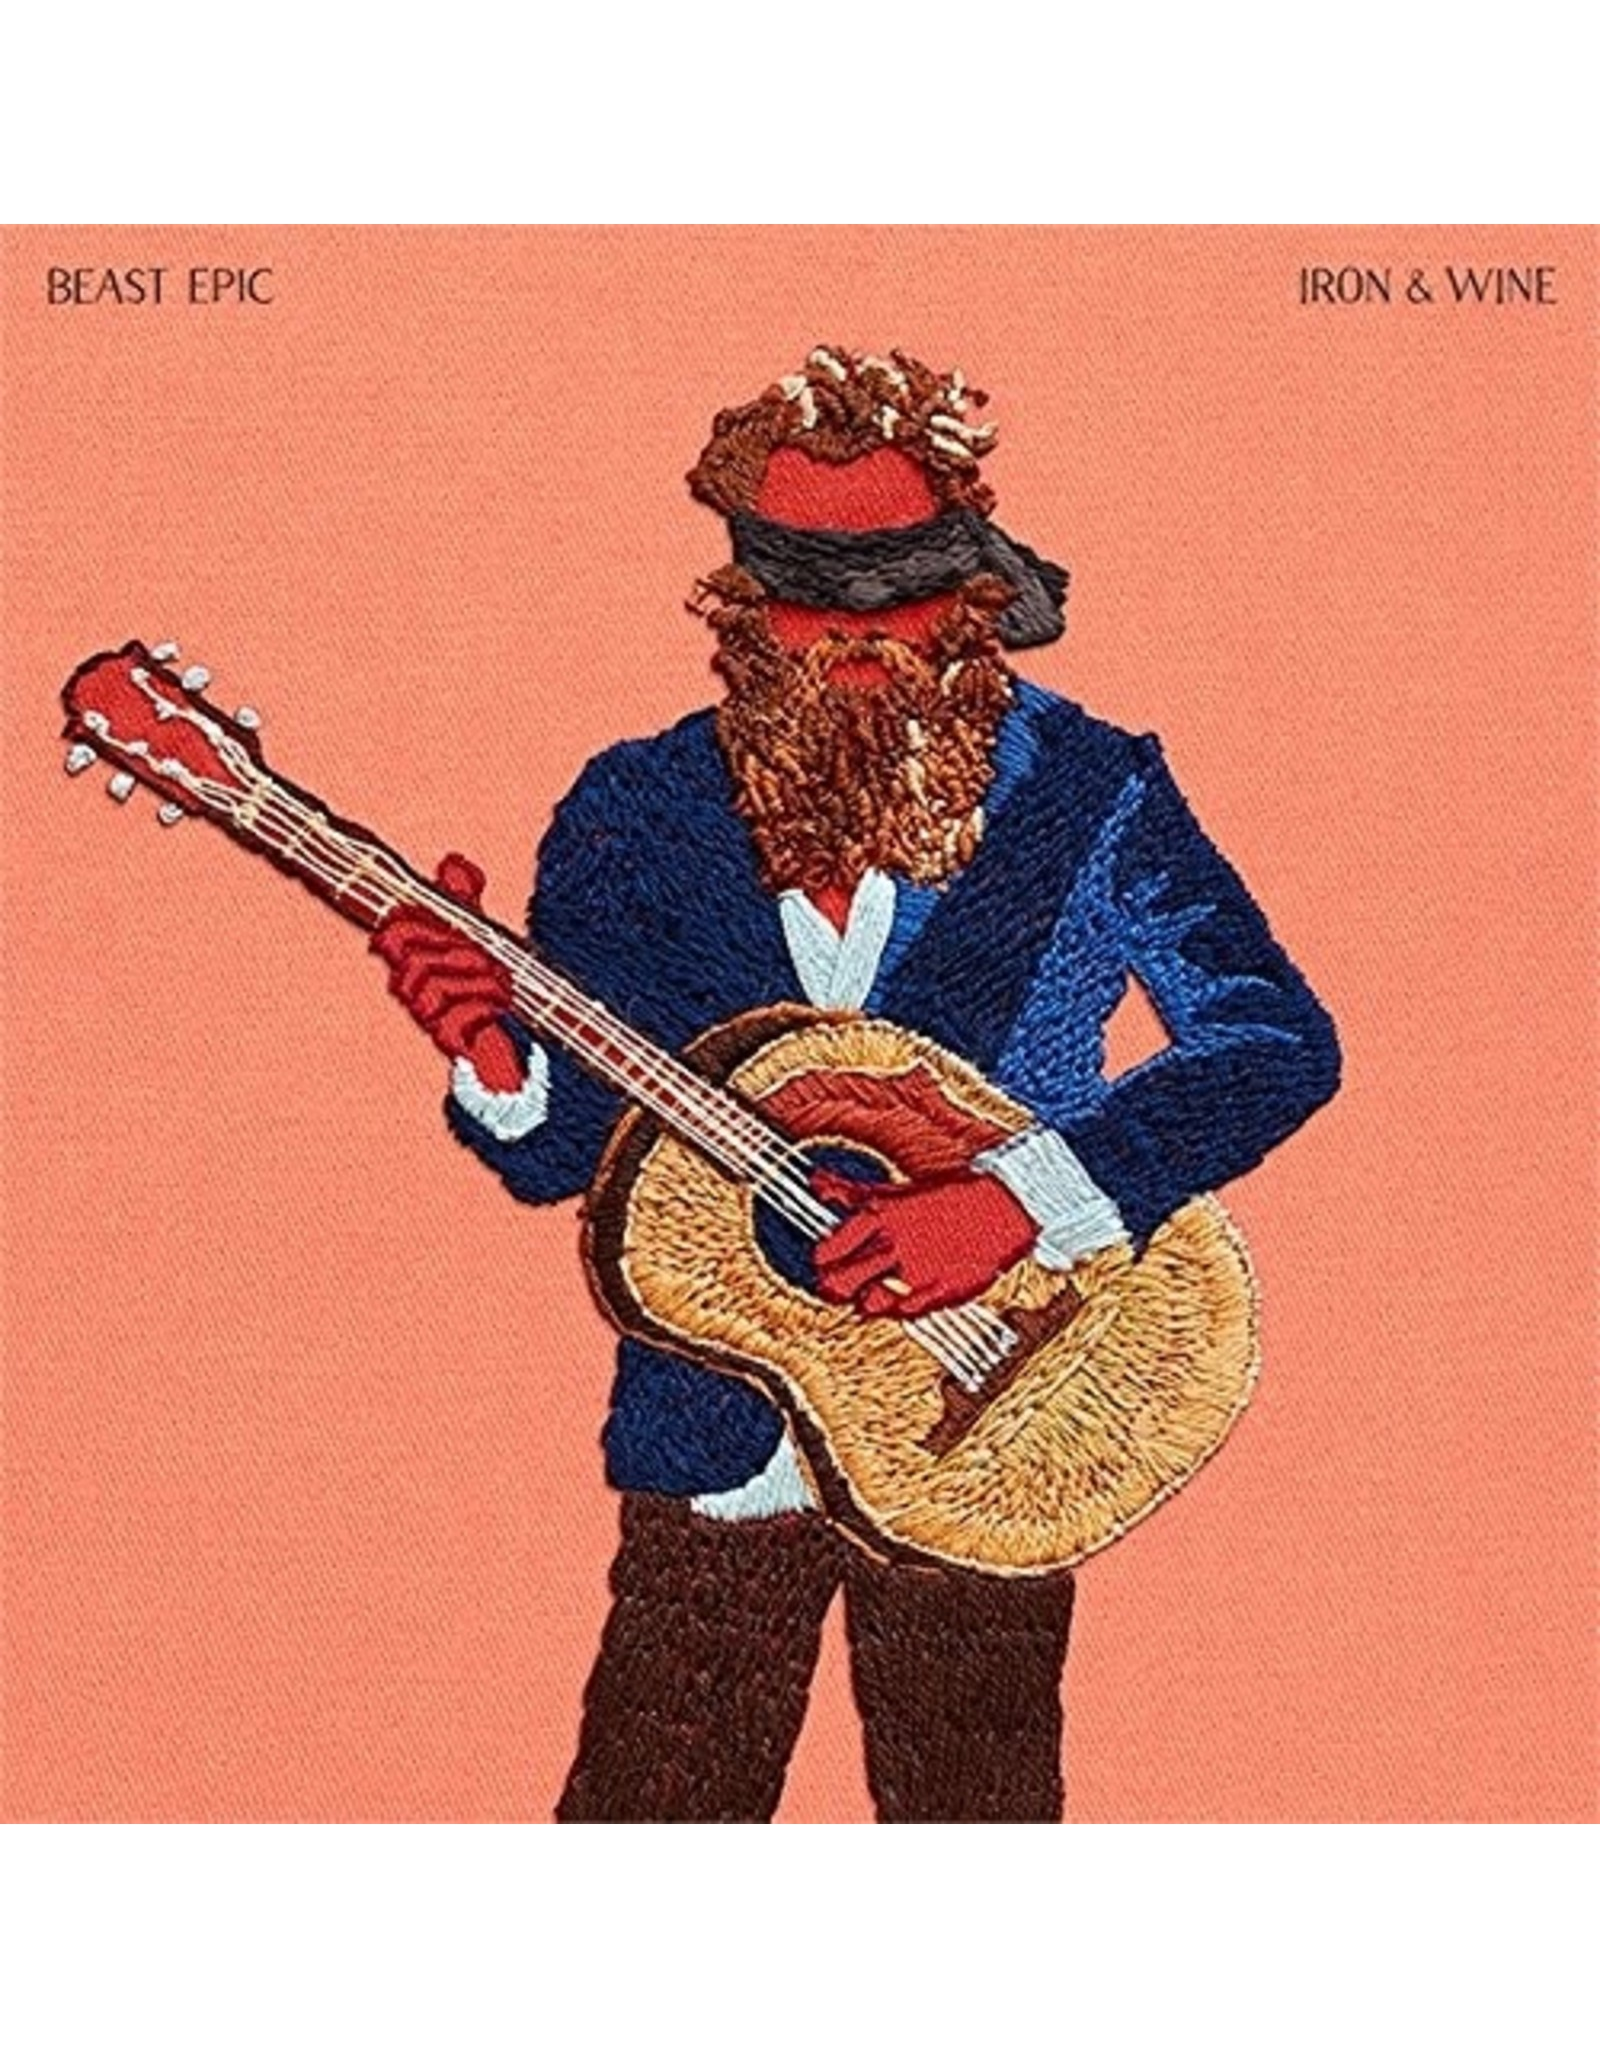 New Vinyl Iron & Wine - Beast Epic LP